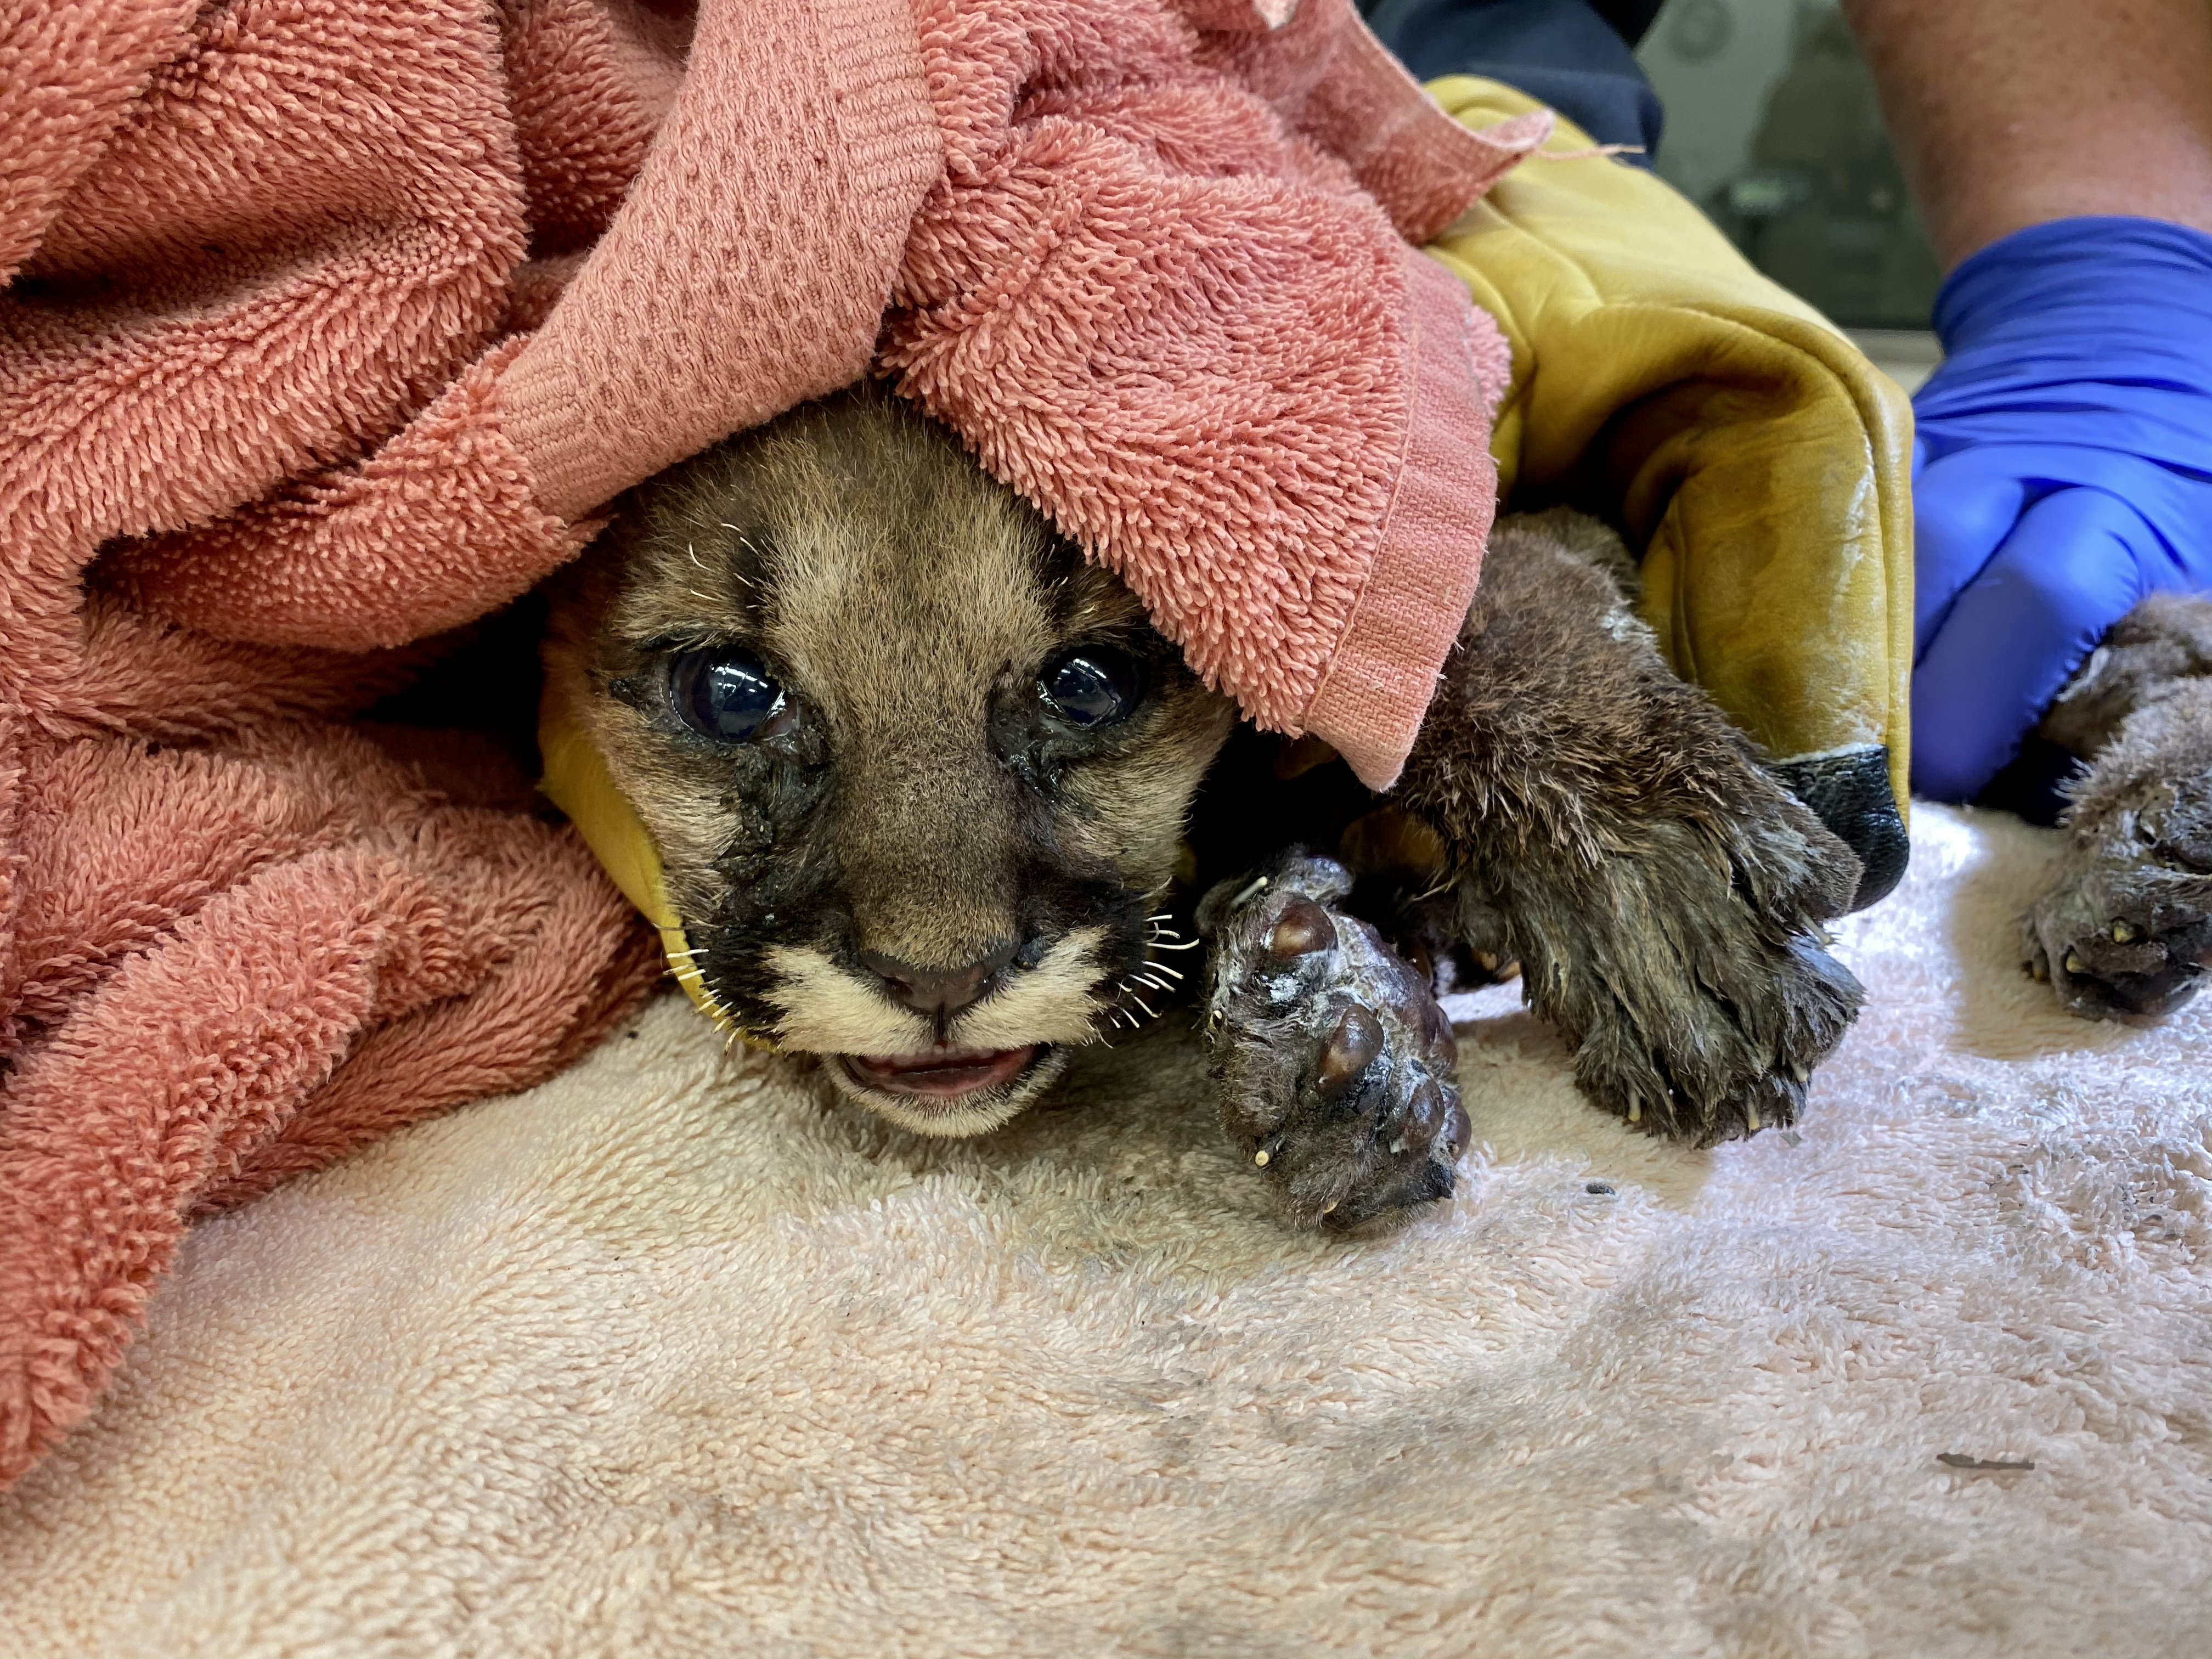 This image shows a mountain lion cub rescued by CAL FIRE from the Zogg Fire burning in Shasta County, Calif. The cub is now being treated at the Oakland Zoo.